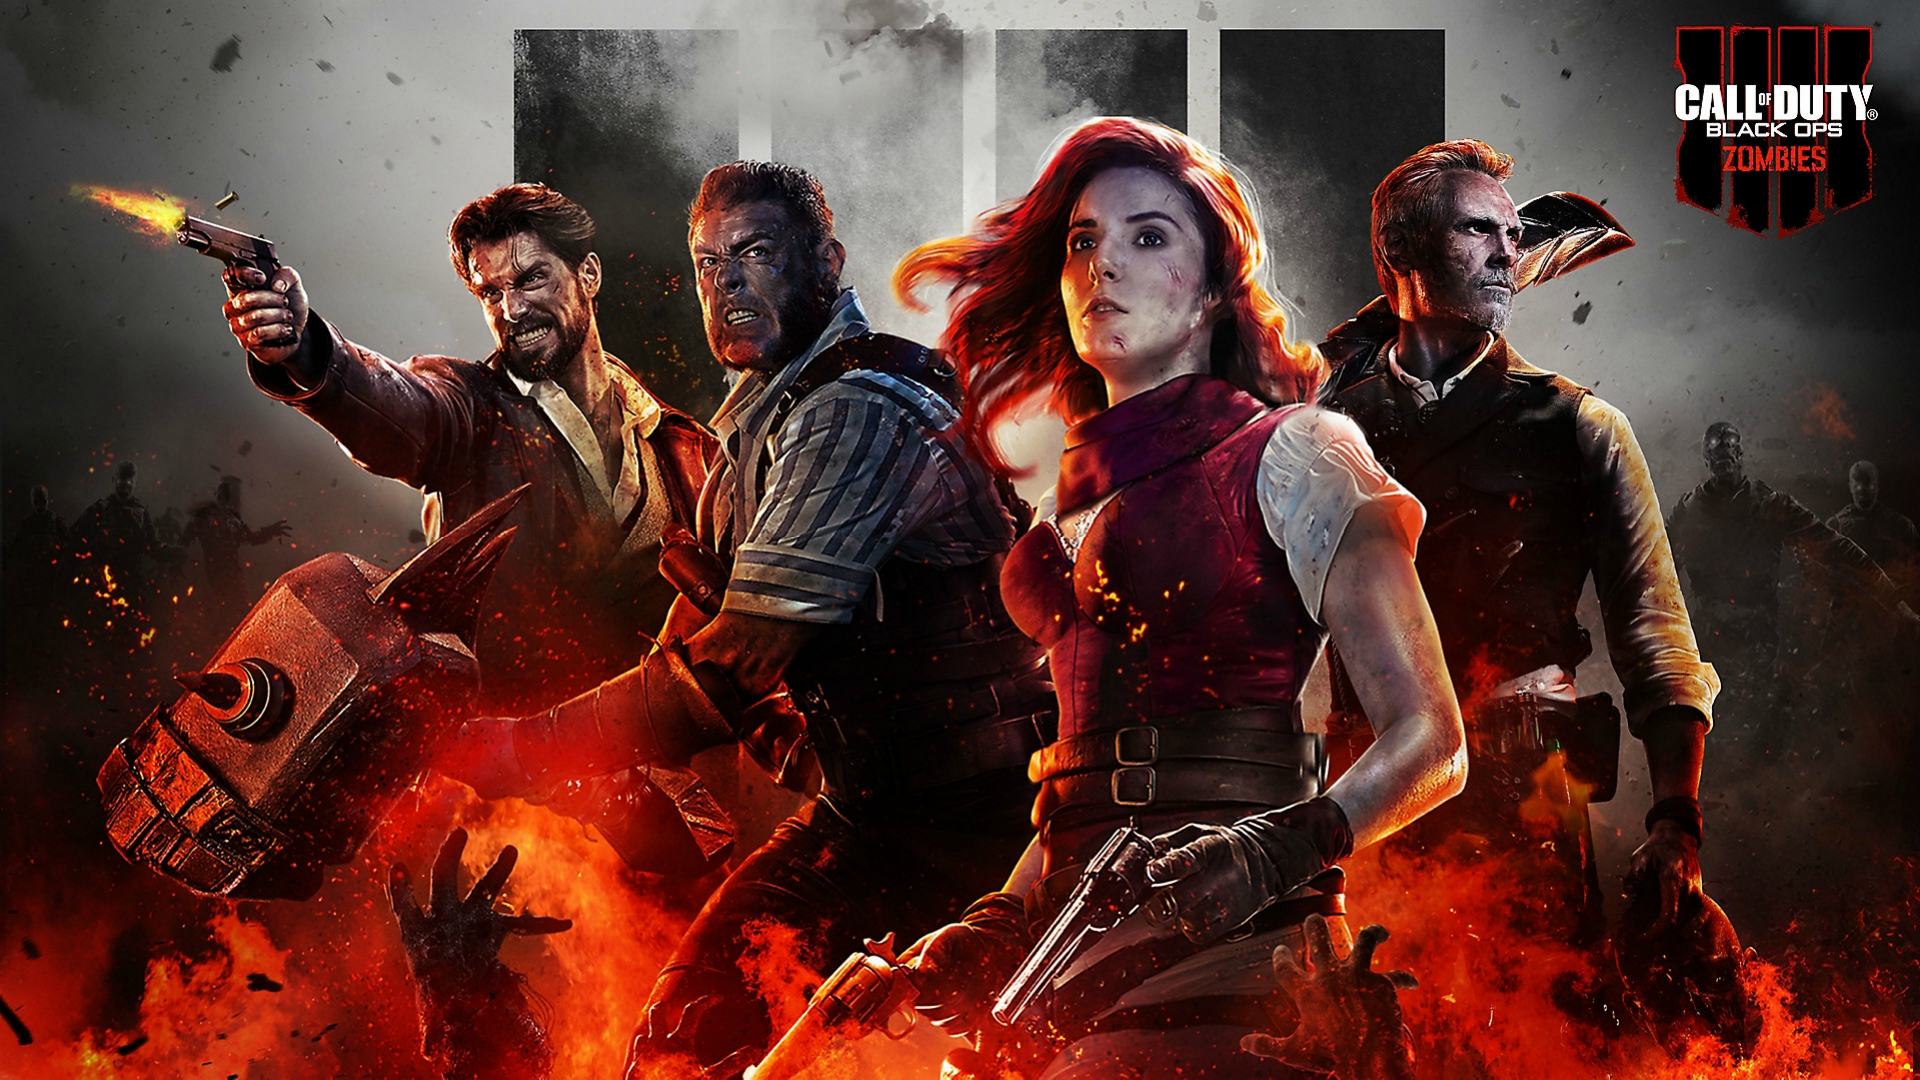 Call Of Duty Black Ops 4 Zombies Hd Wallpaper Hintergrund